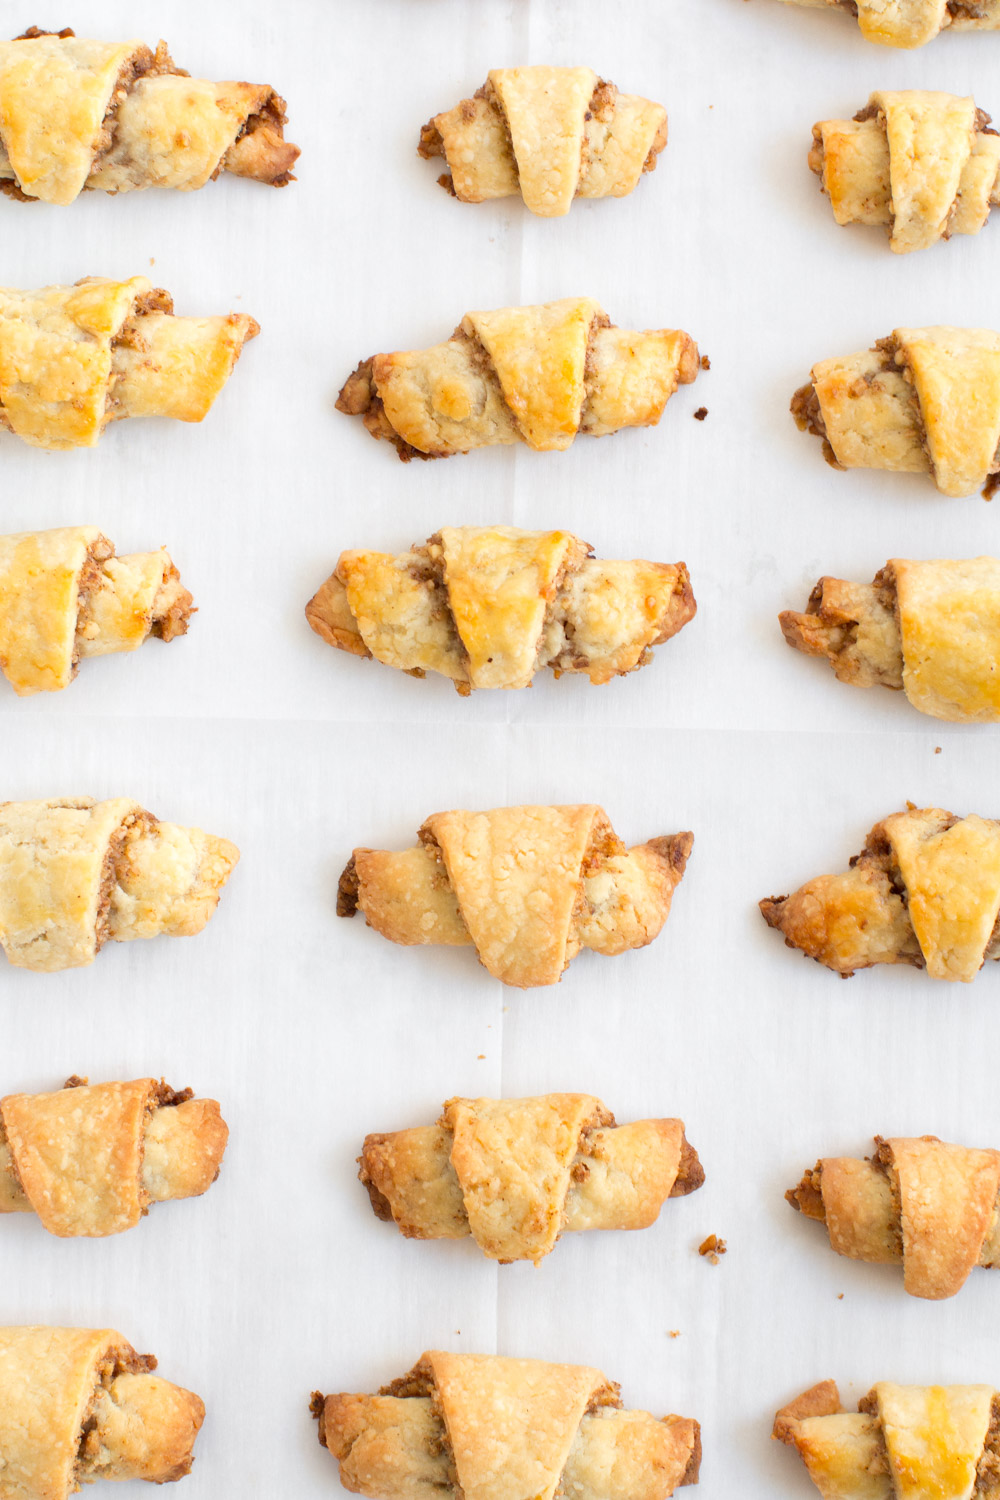 Maple Walnut Rugelach baked